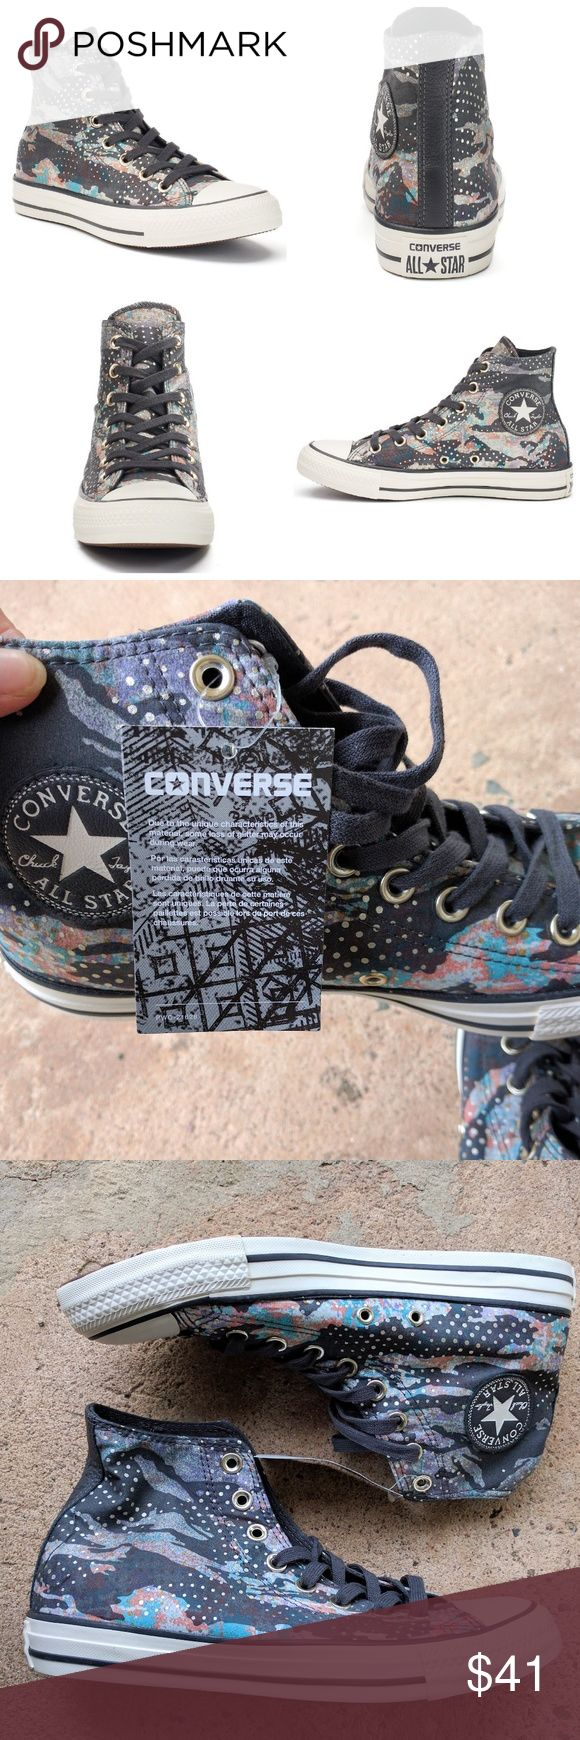 Converse All Star mountain landscape hi top sneake Retails for $60 Converse CTAS Mountain Landscape HI Almost Black / Light gold / Egret 553289C Women's size 9 New without box. Box is damaged. See pics for more details.  Thanks for Stopping by. Converse Shoes Sneakers